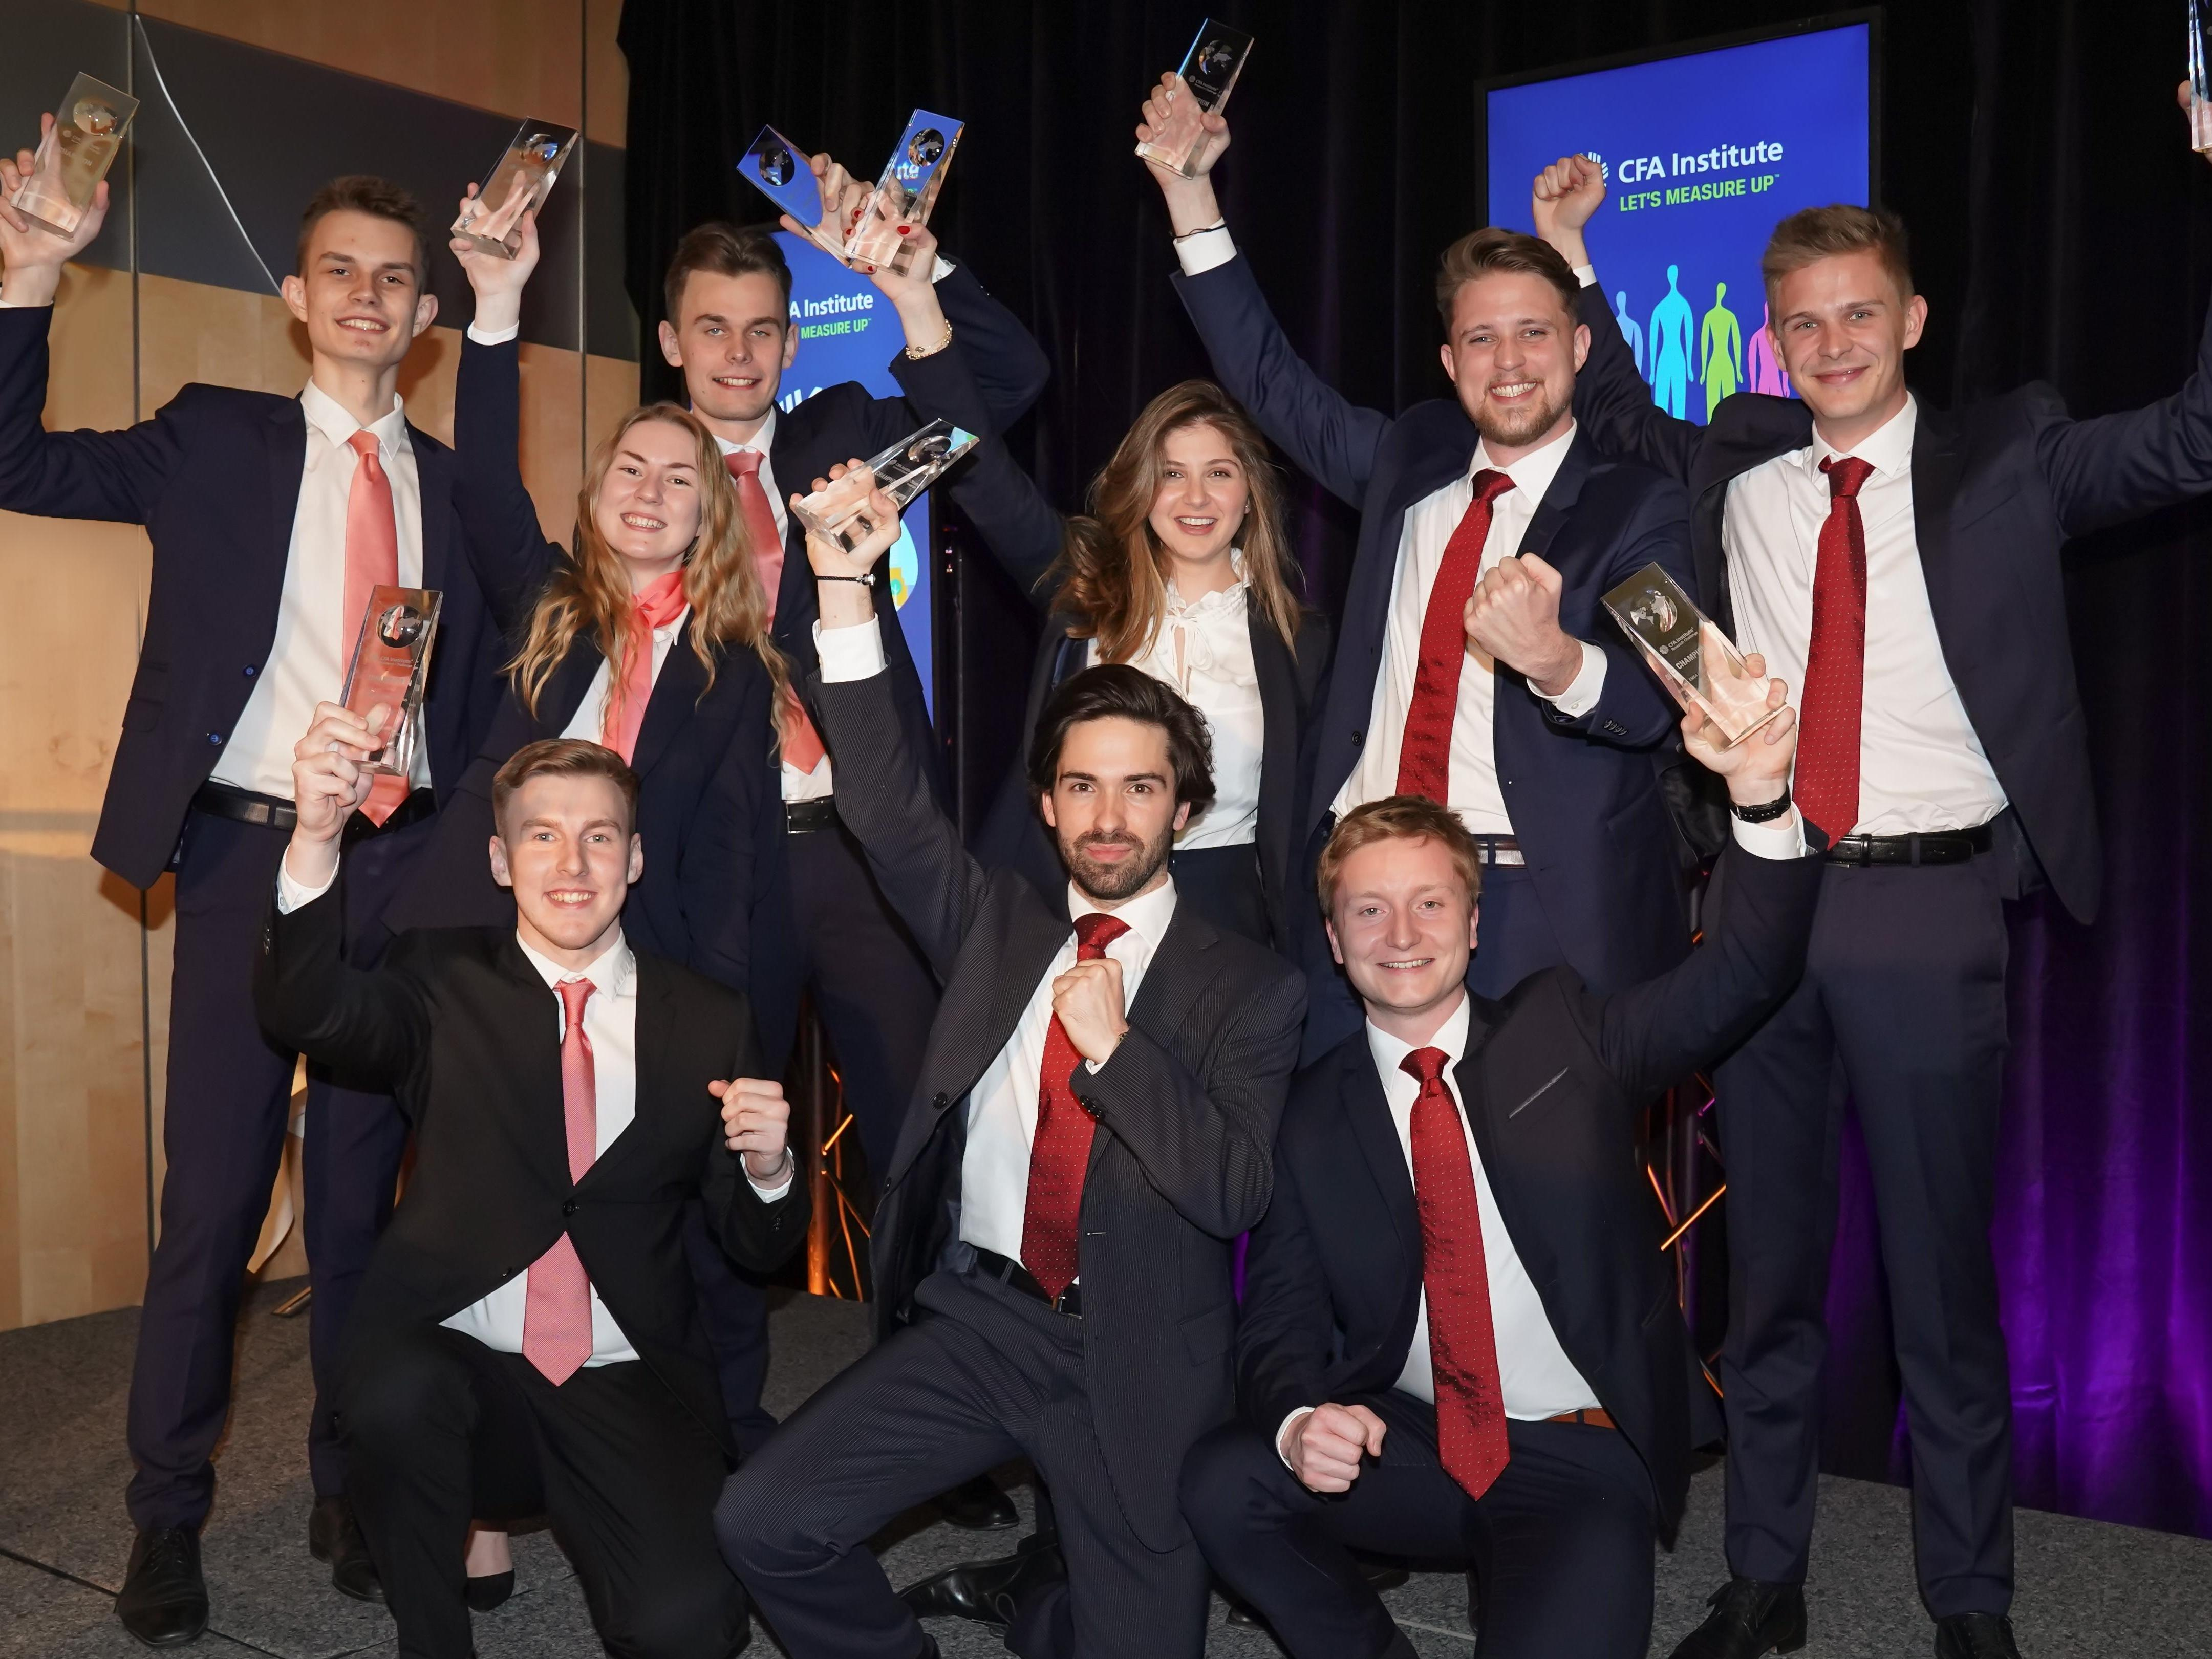 The HEC Lausanne team wins the EMEA final of the CFA Institute Research Challenge